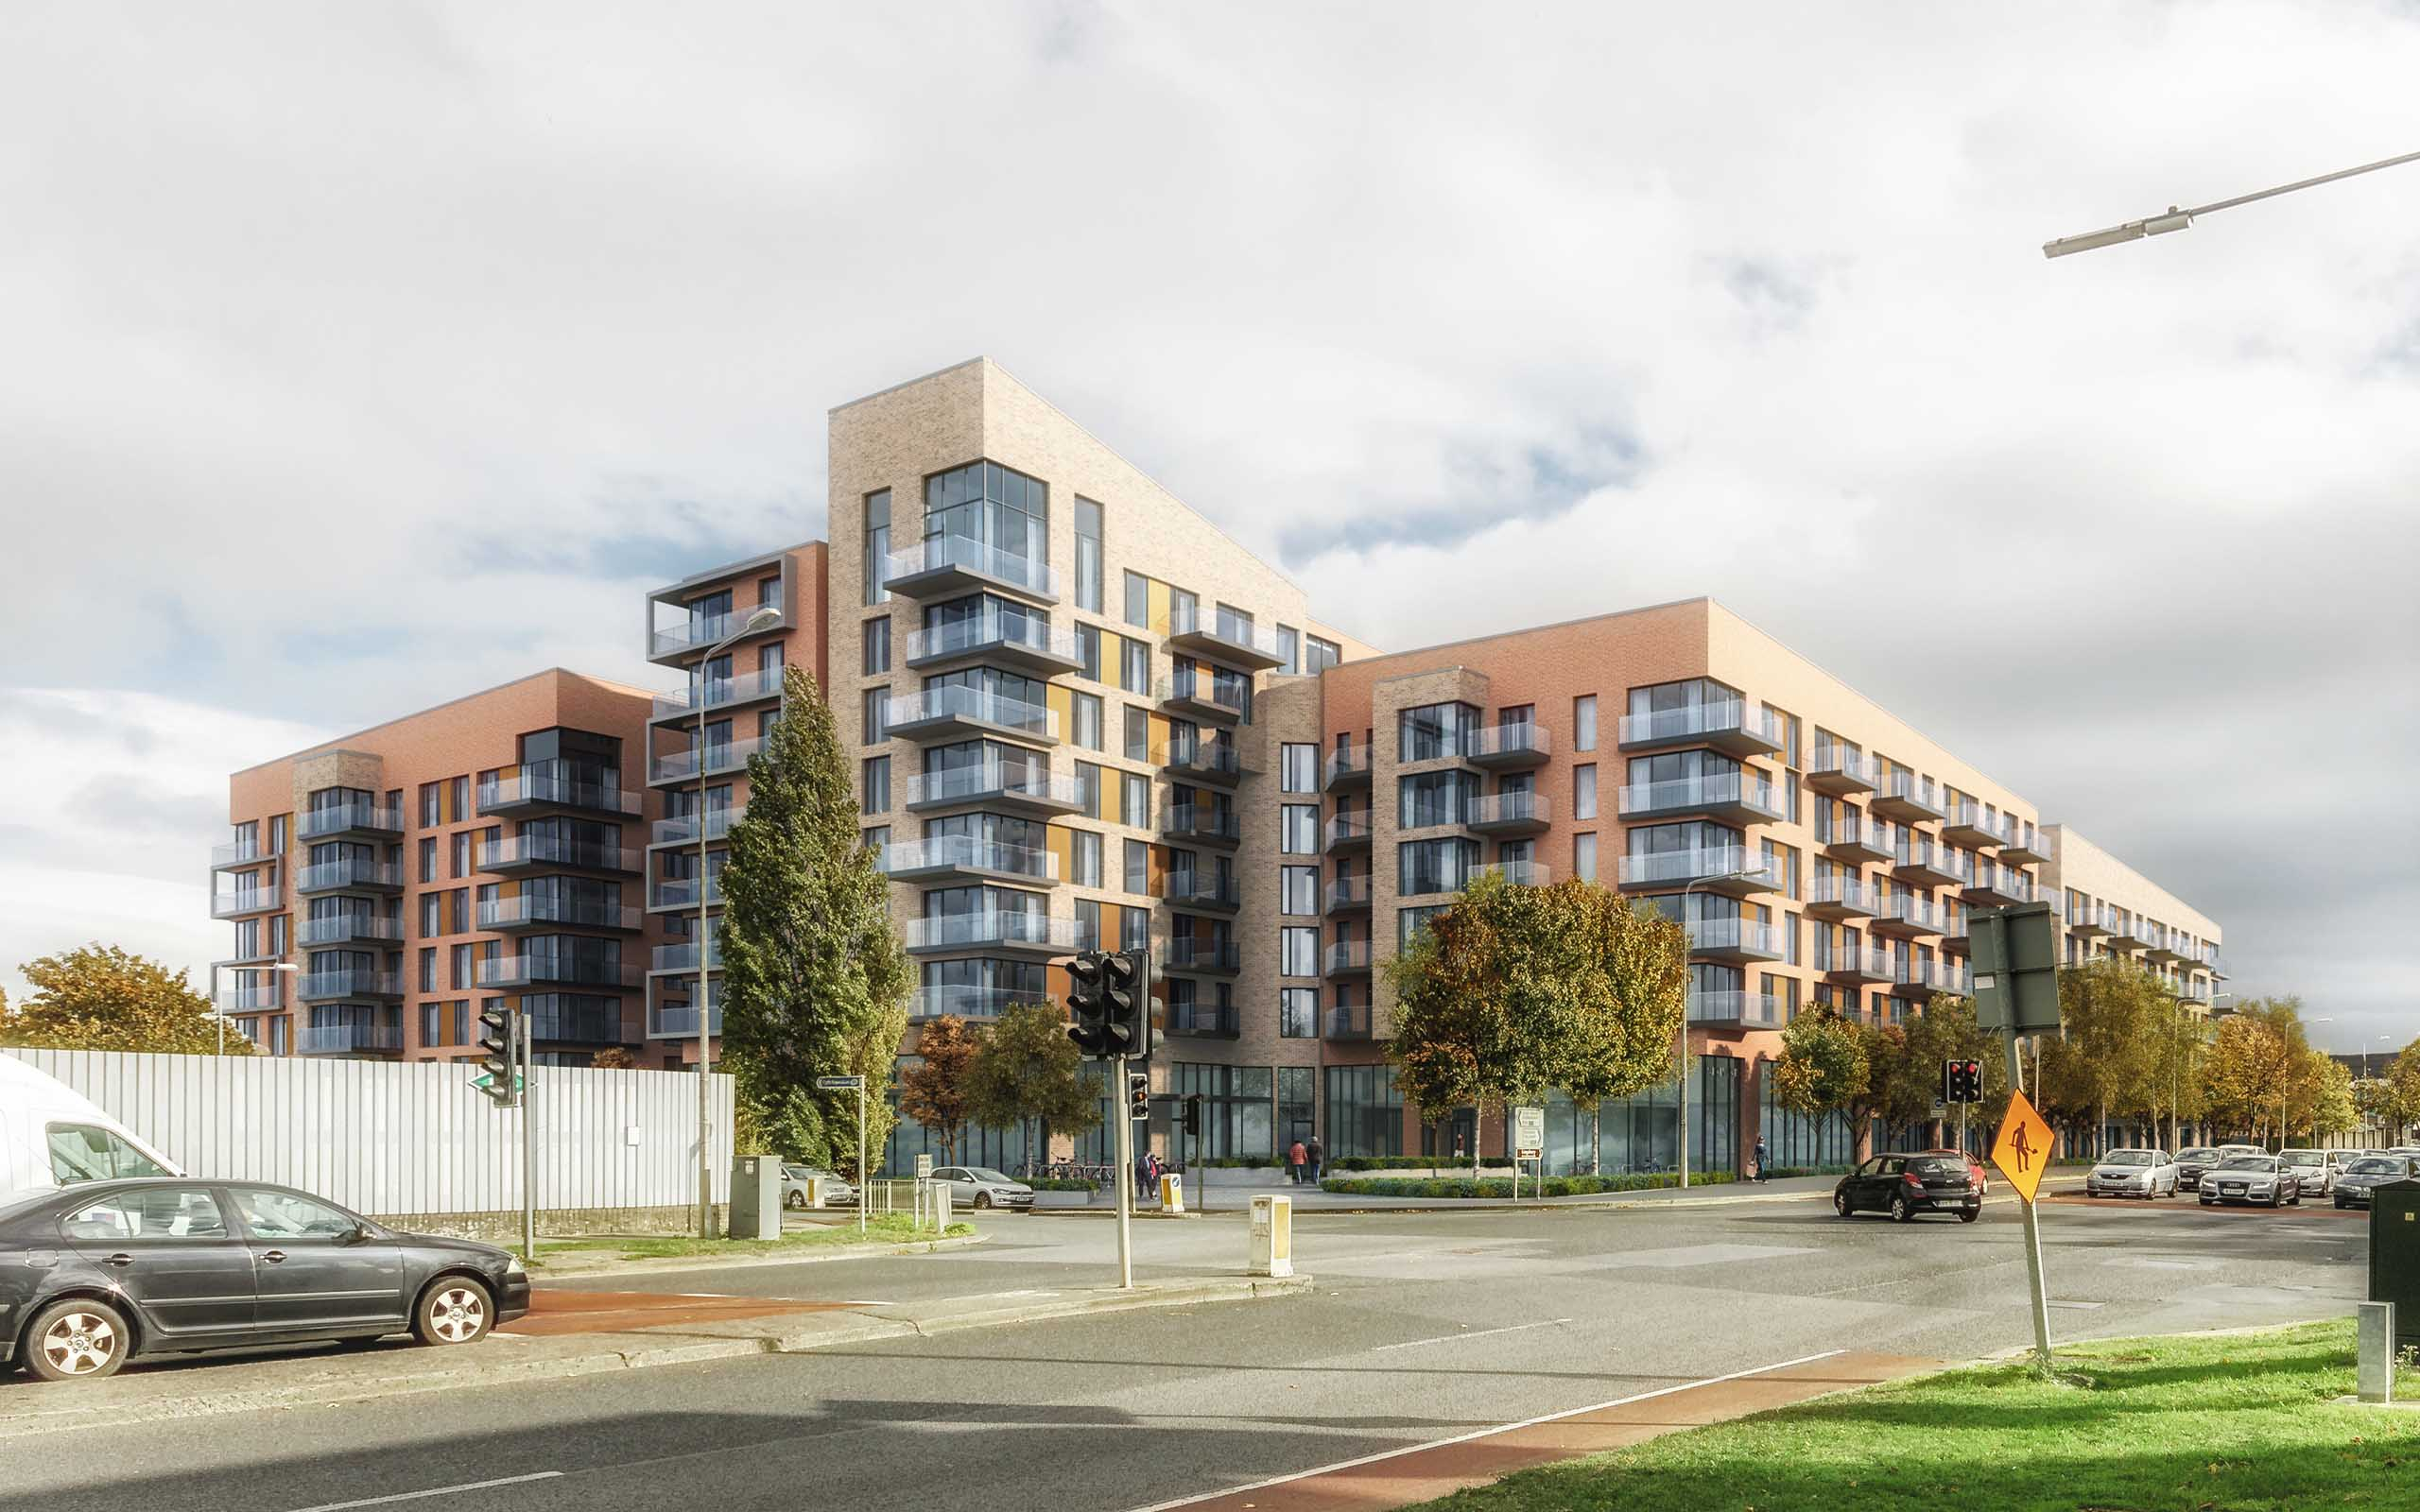 Architectural CGI of Airton Road Development, Tallaght